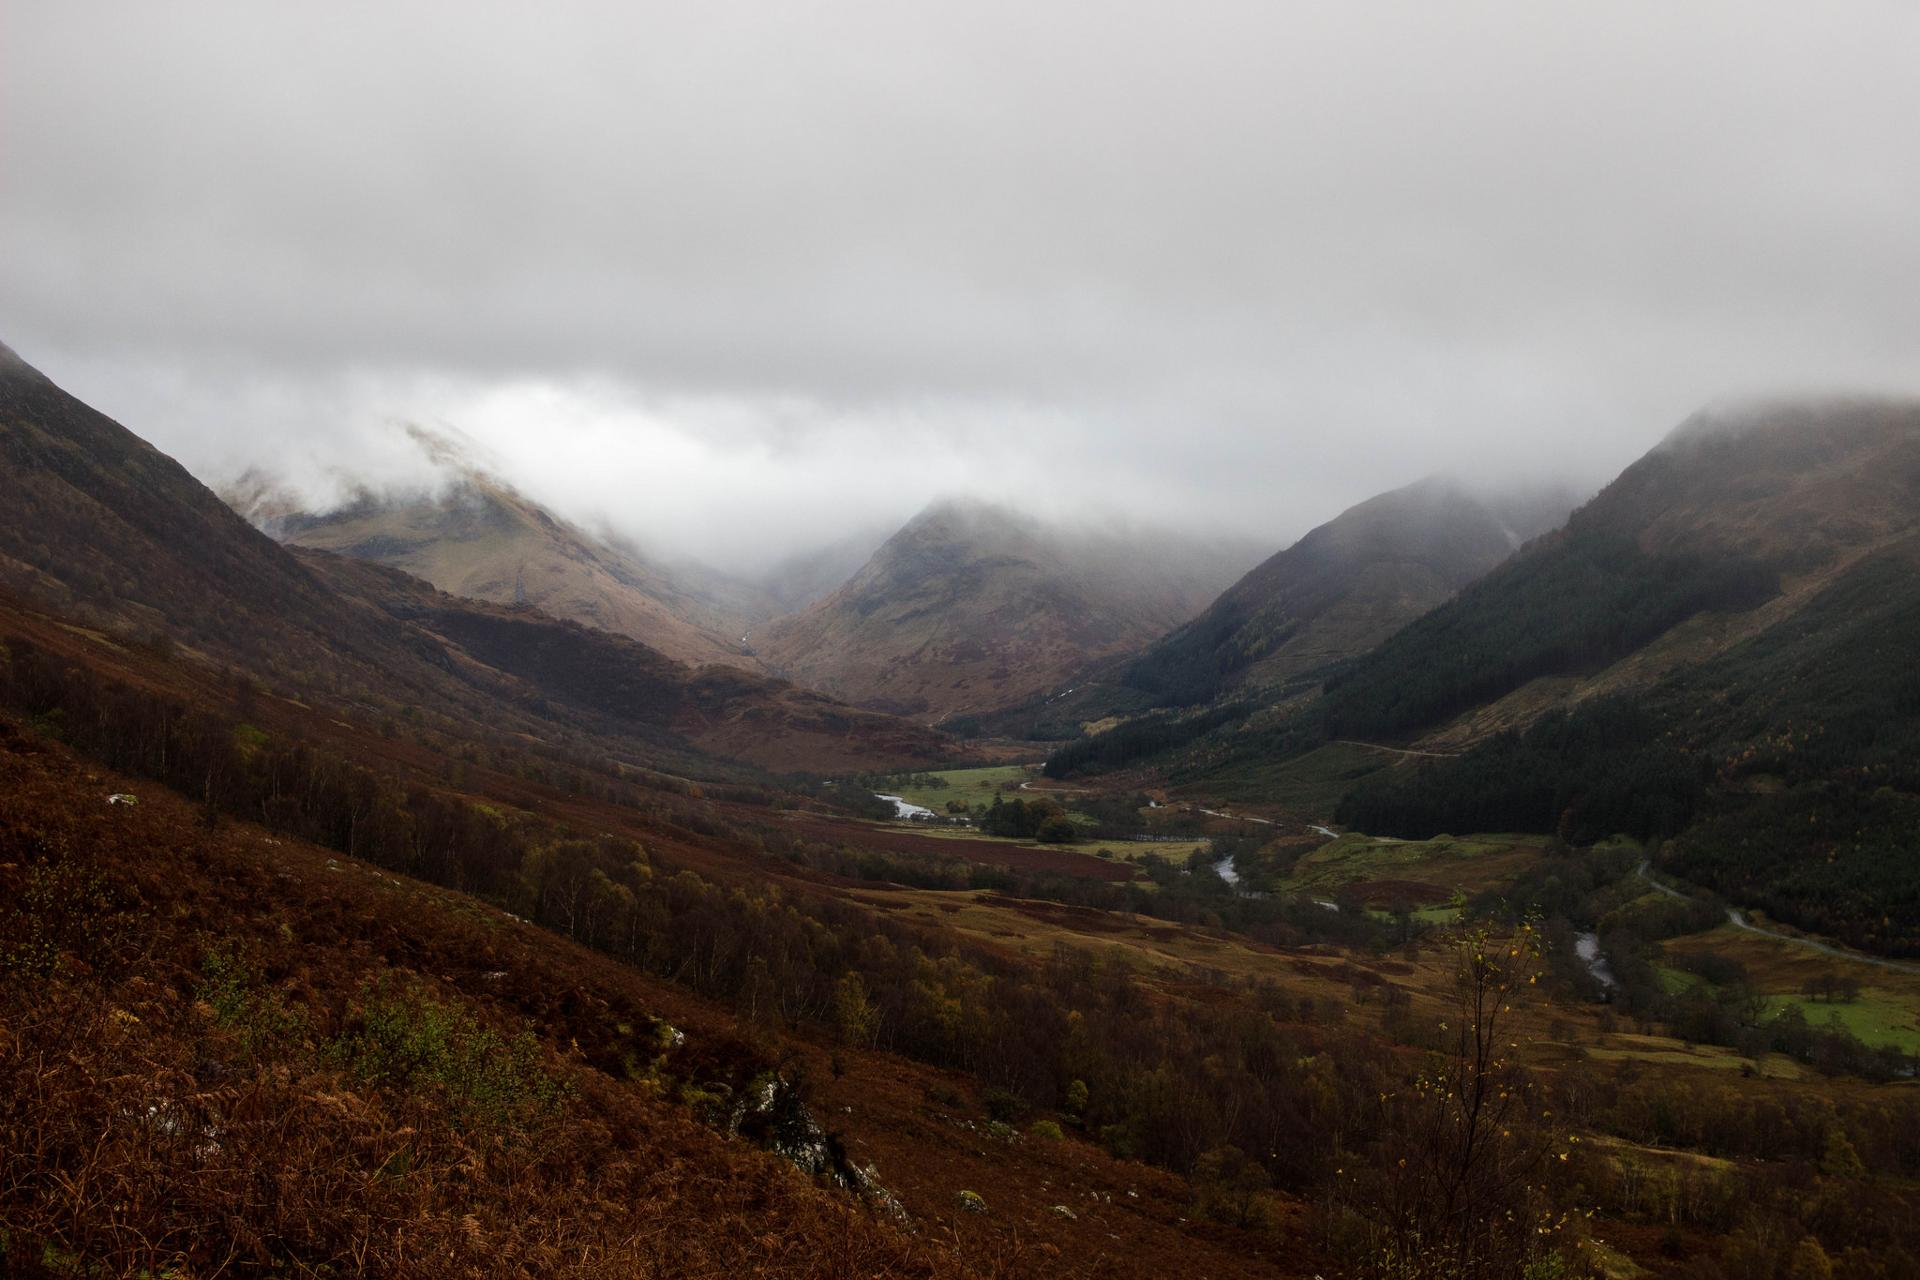 View from the Ben Nevis